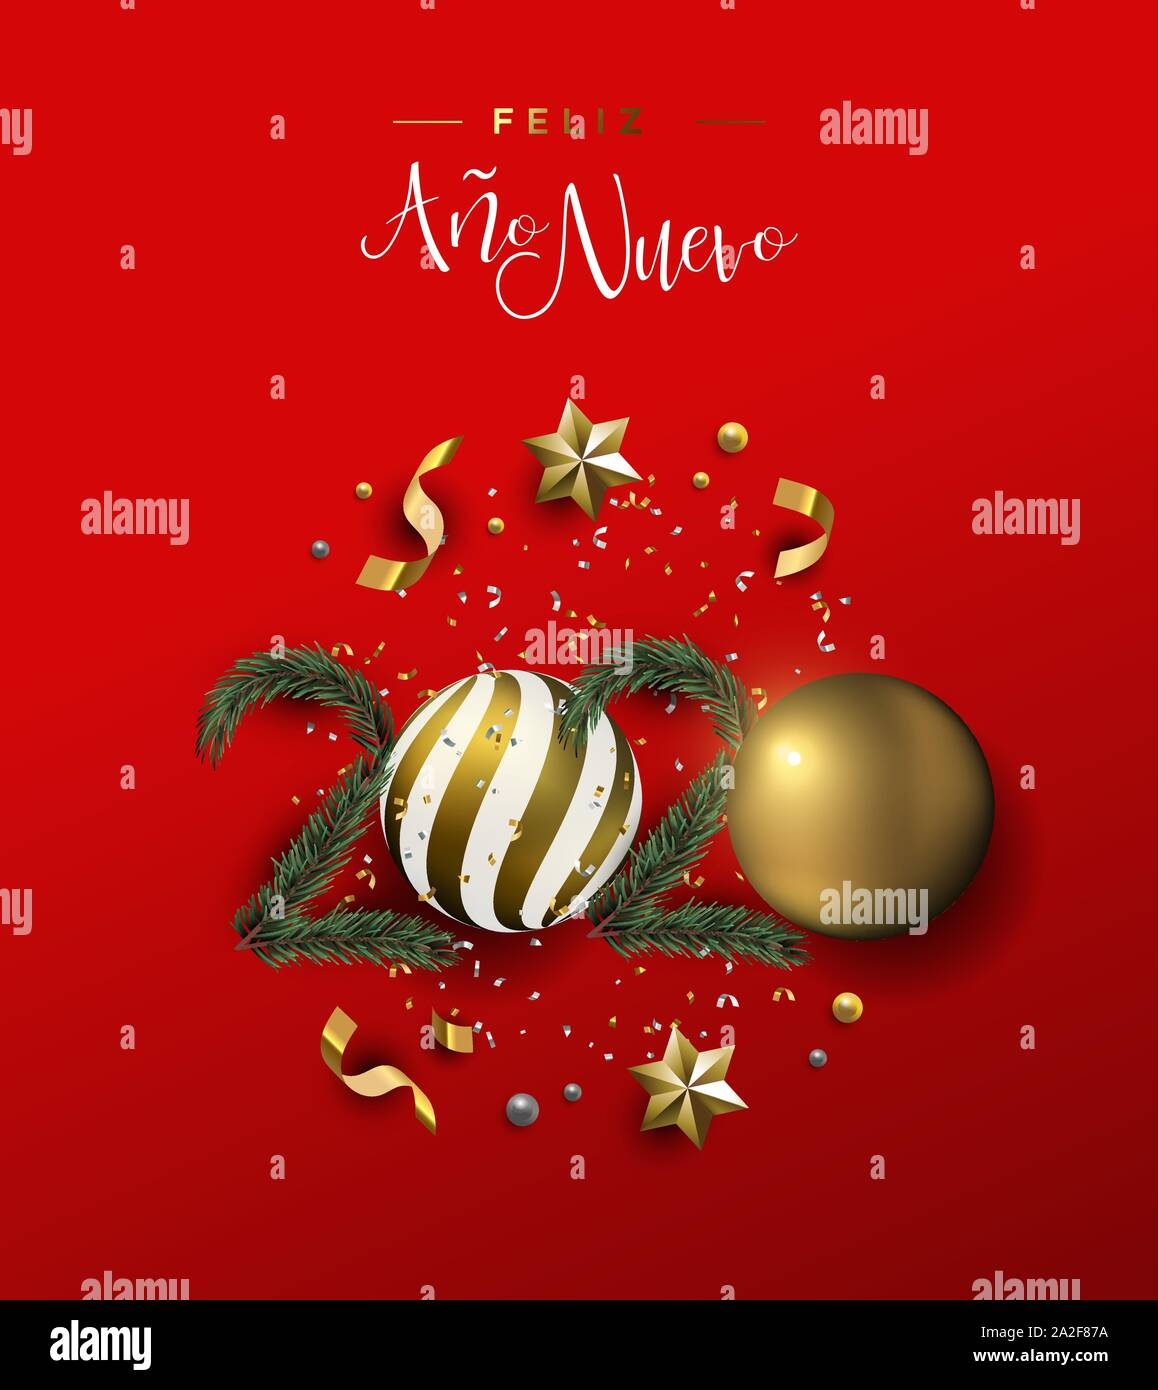 Merry Christmas 2020 3d Ornament Happy New Year spanish language greeting card of gold 3d holiday